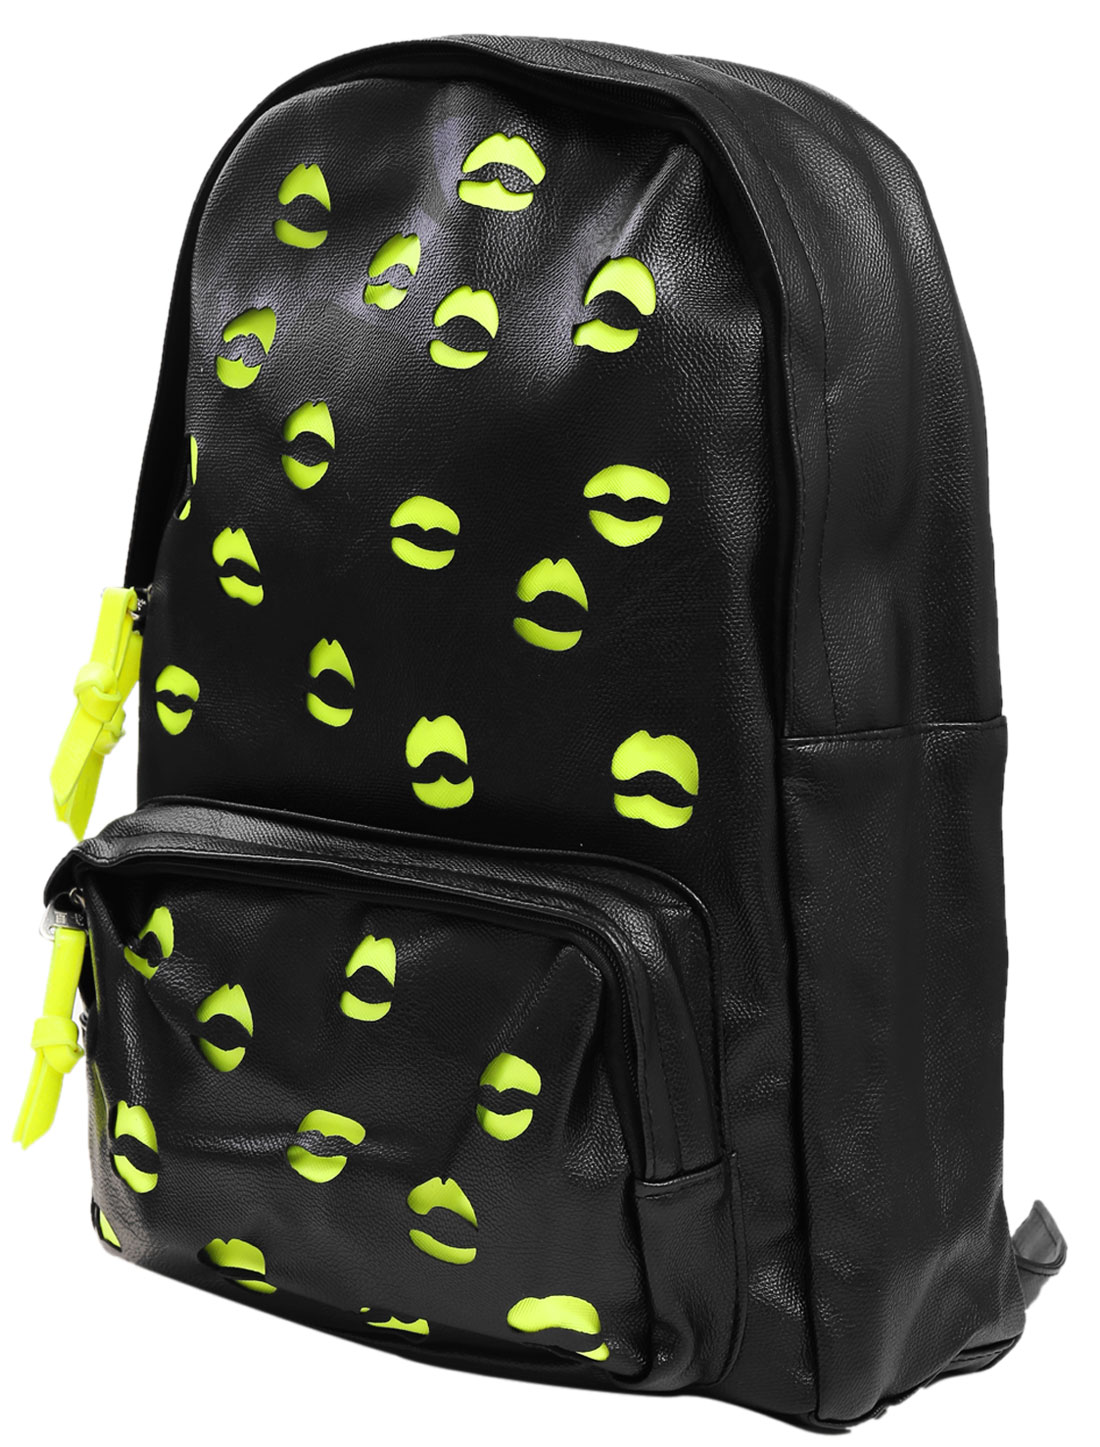 Men Two Compartment Mouth Design Imitation Leather Backpack Black